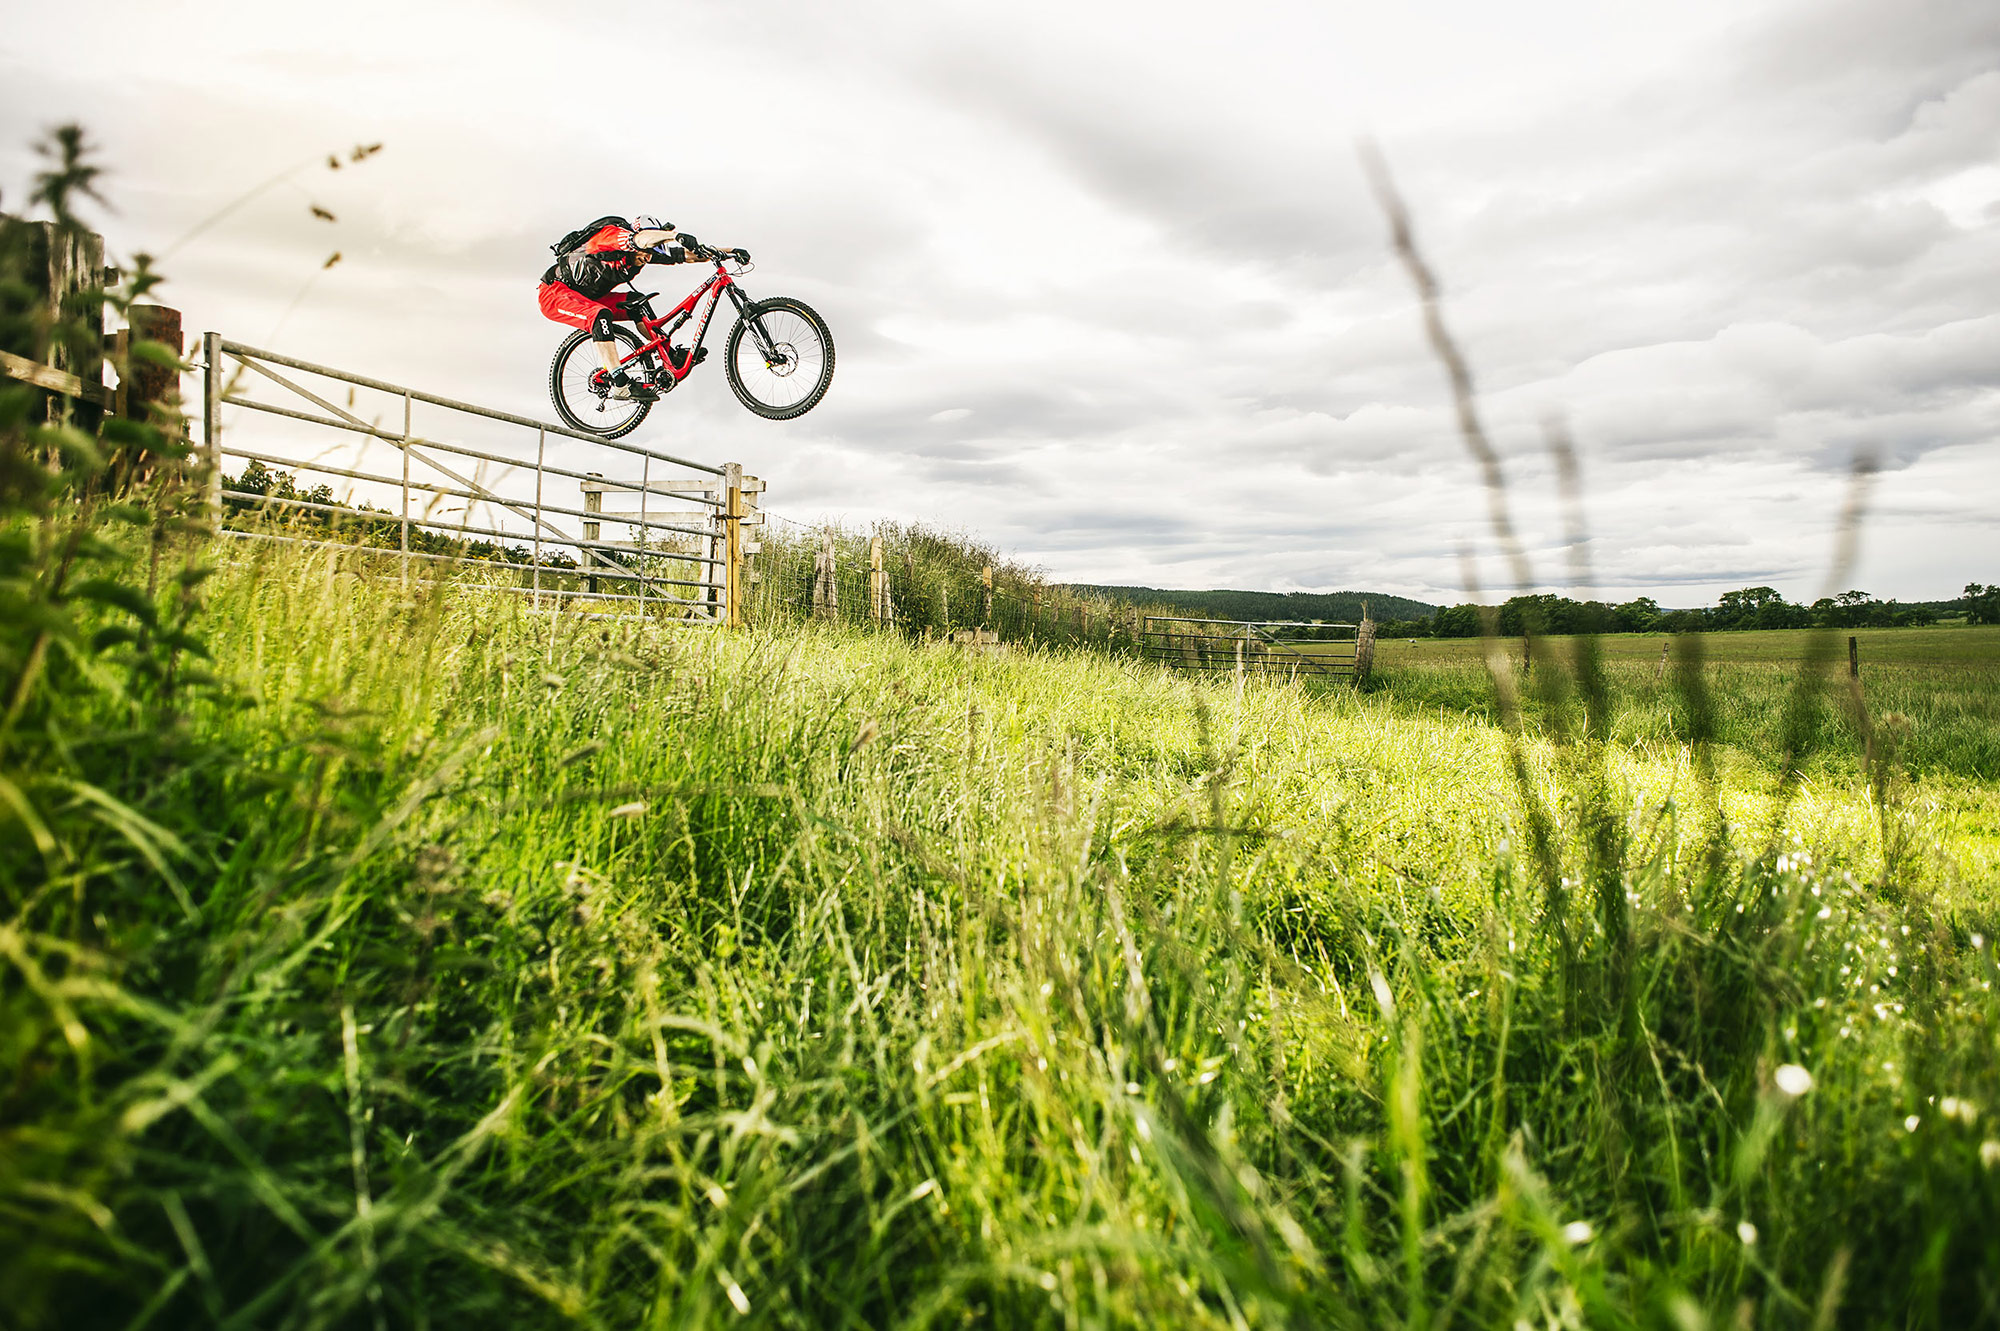 danny_macaskill_03_by_fred-murray-red-bull-content-pool